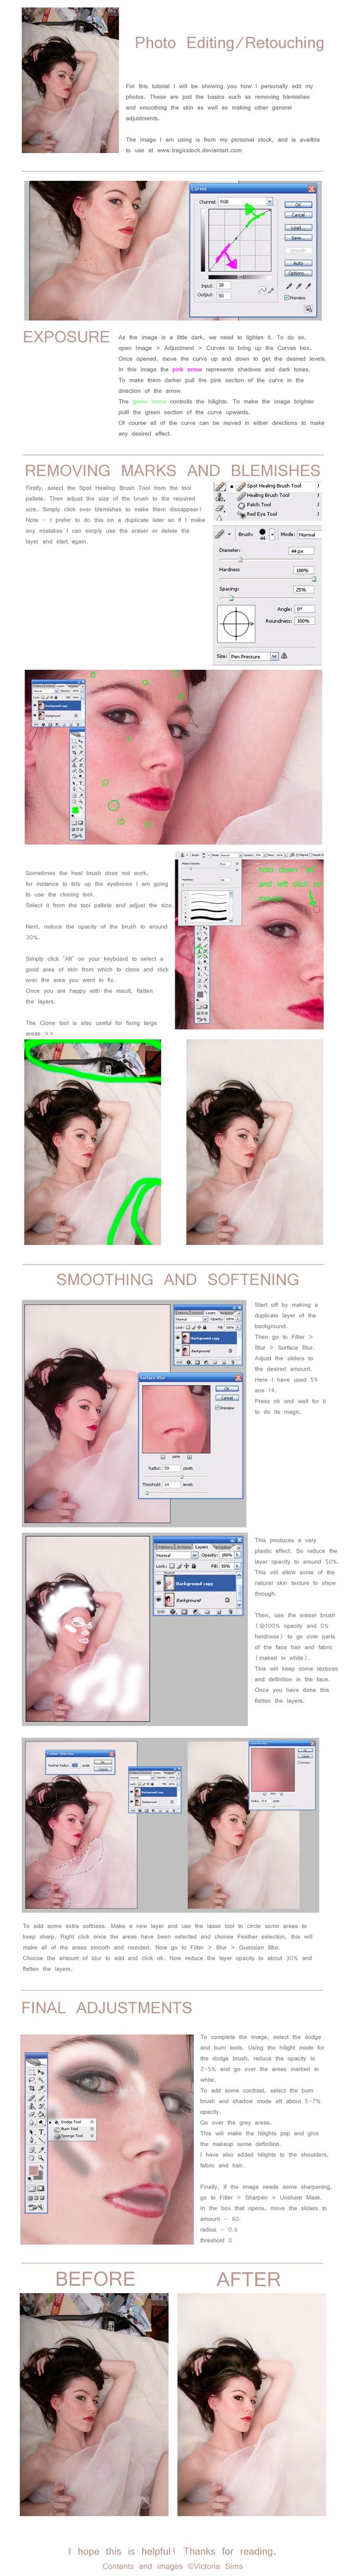 Basic Photo Editing Tutorial by `TheTragicTruth-Of-Me on deviantART